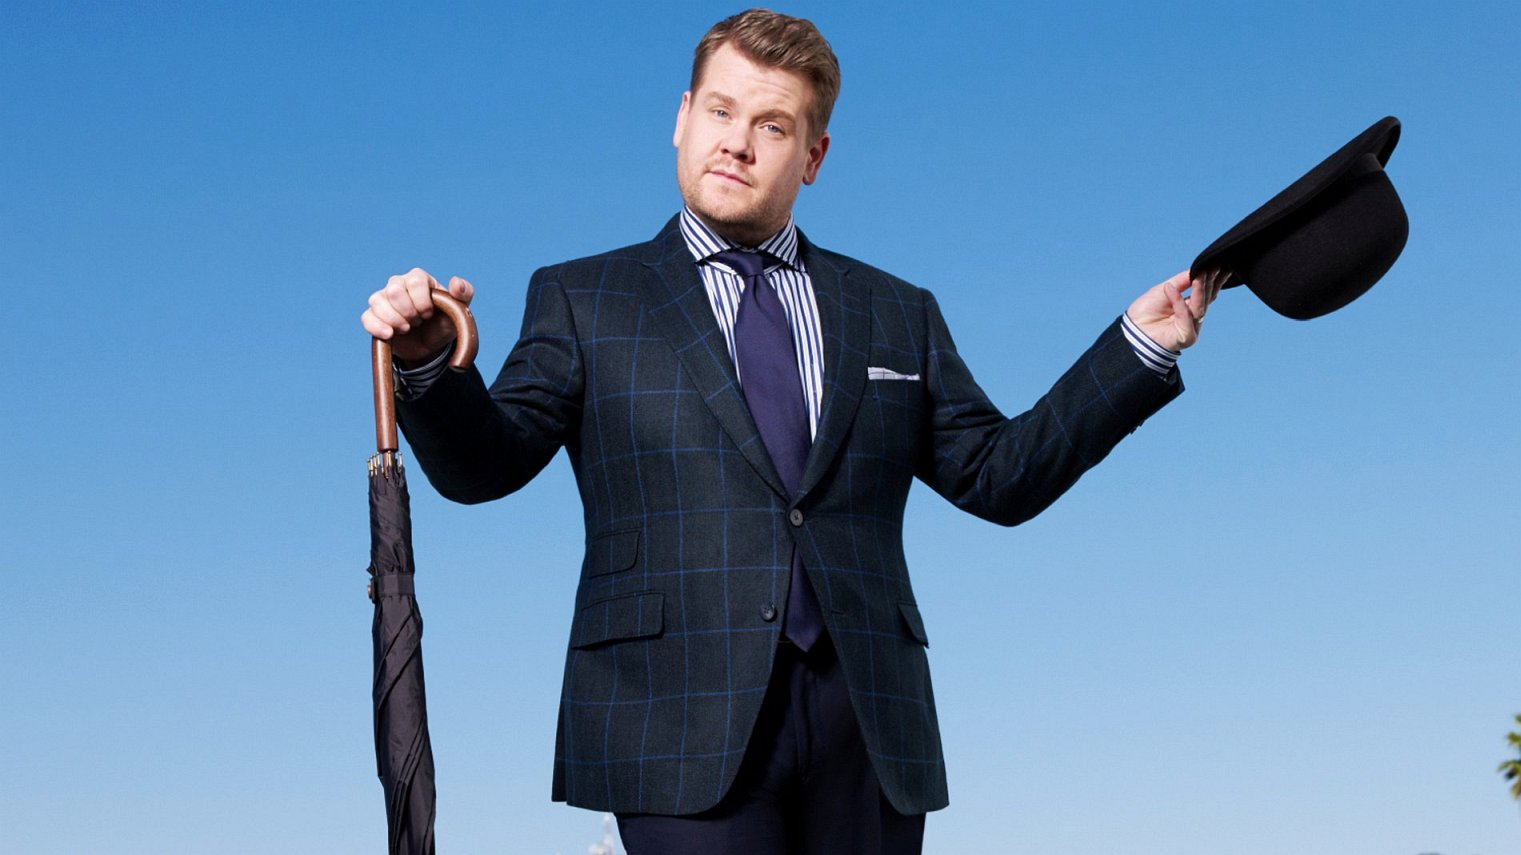 what time does The Late Late Show with James Corden come on